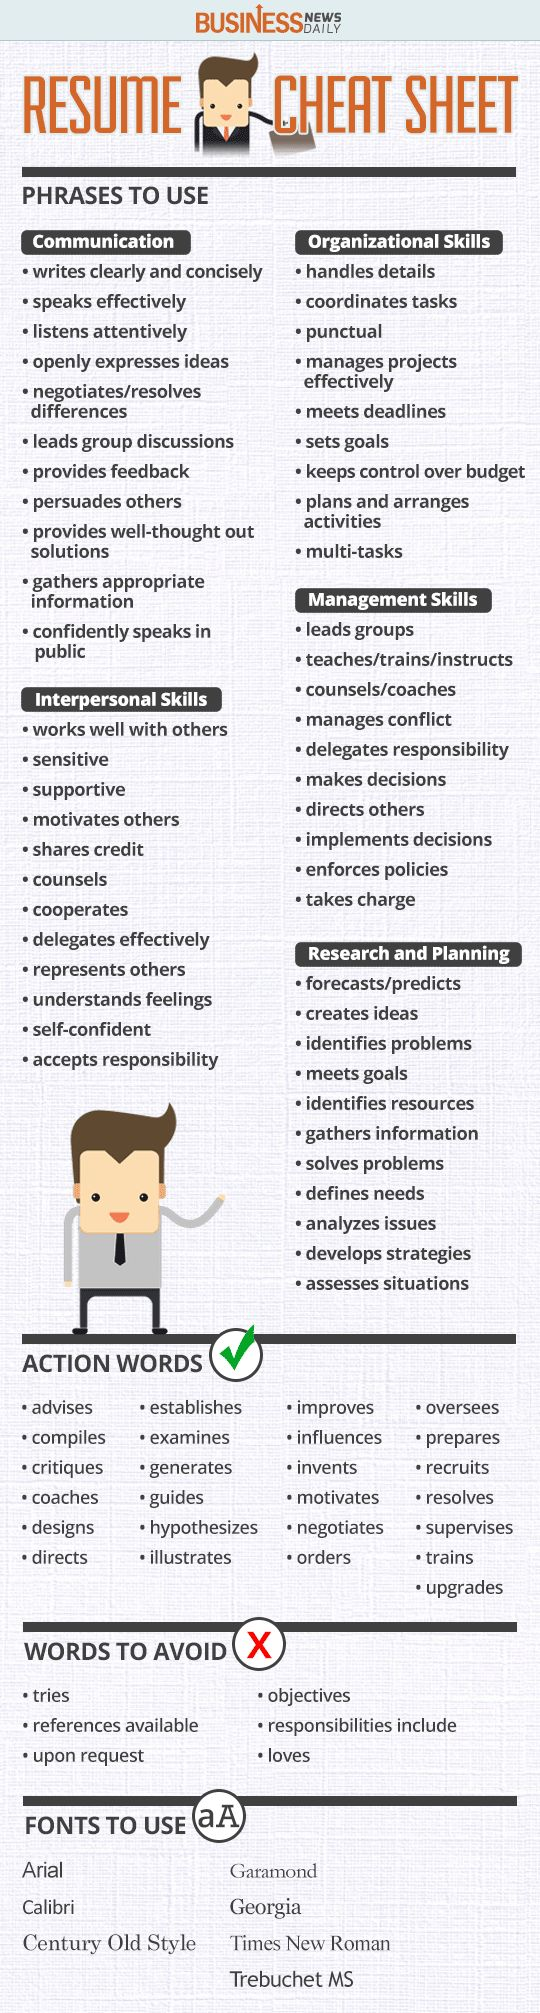 Opposenewapstandardsus  Pleasant  Ideas About Resume On Pinterest  Cv Format Resume Cv And  With Gorgeous Resume Cheat Sheet Infographic Andrews Almost Done With A Complete Unit On Employment Which With Captivating Office Manager Sample Resume Also Key Skills To Put On Resume In Addition Resume For Government Job And Resume Contact Information As Well As Writing Skills On Resume Additionally Other Skills Resume From Pinterestcom With Opposenewapstandardsus  Gorgeous  Ideas About Resume On Pinterest  Cv Format Resume Cv And  With Captivating Resume Cheat Sheet Infographic Andrews Almost Done With A Complete Unit On Employment Which And Pleasant Office Manager Sample Resume Also Key Skills To Put On Resume In Addition Resume For Government Job From Pinterestcom